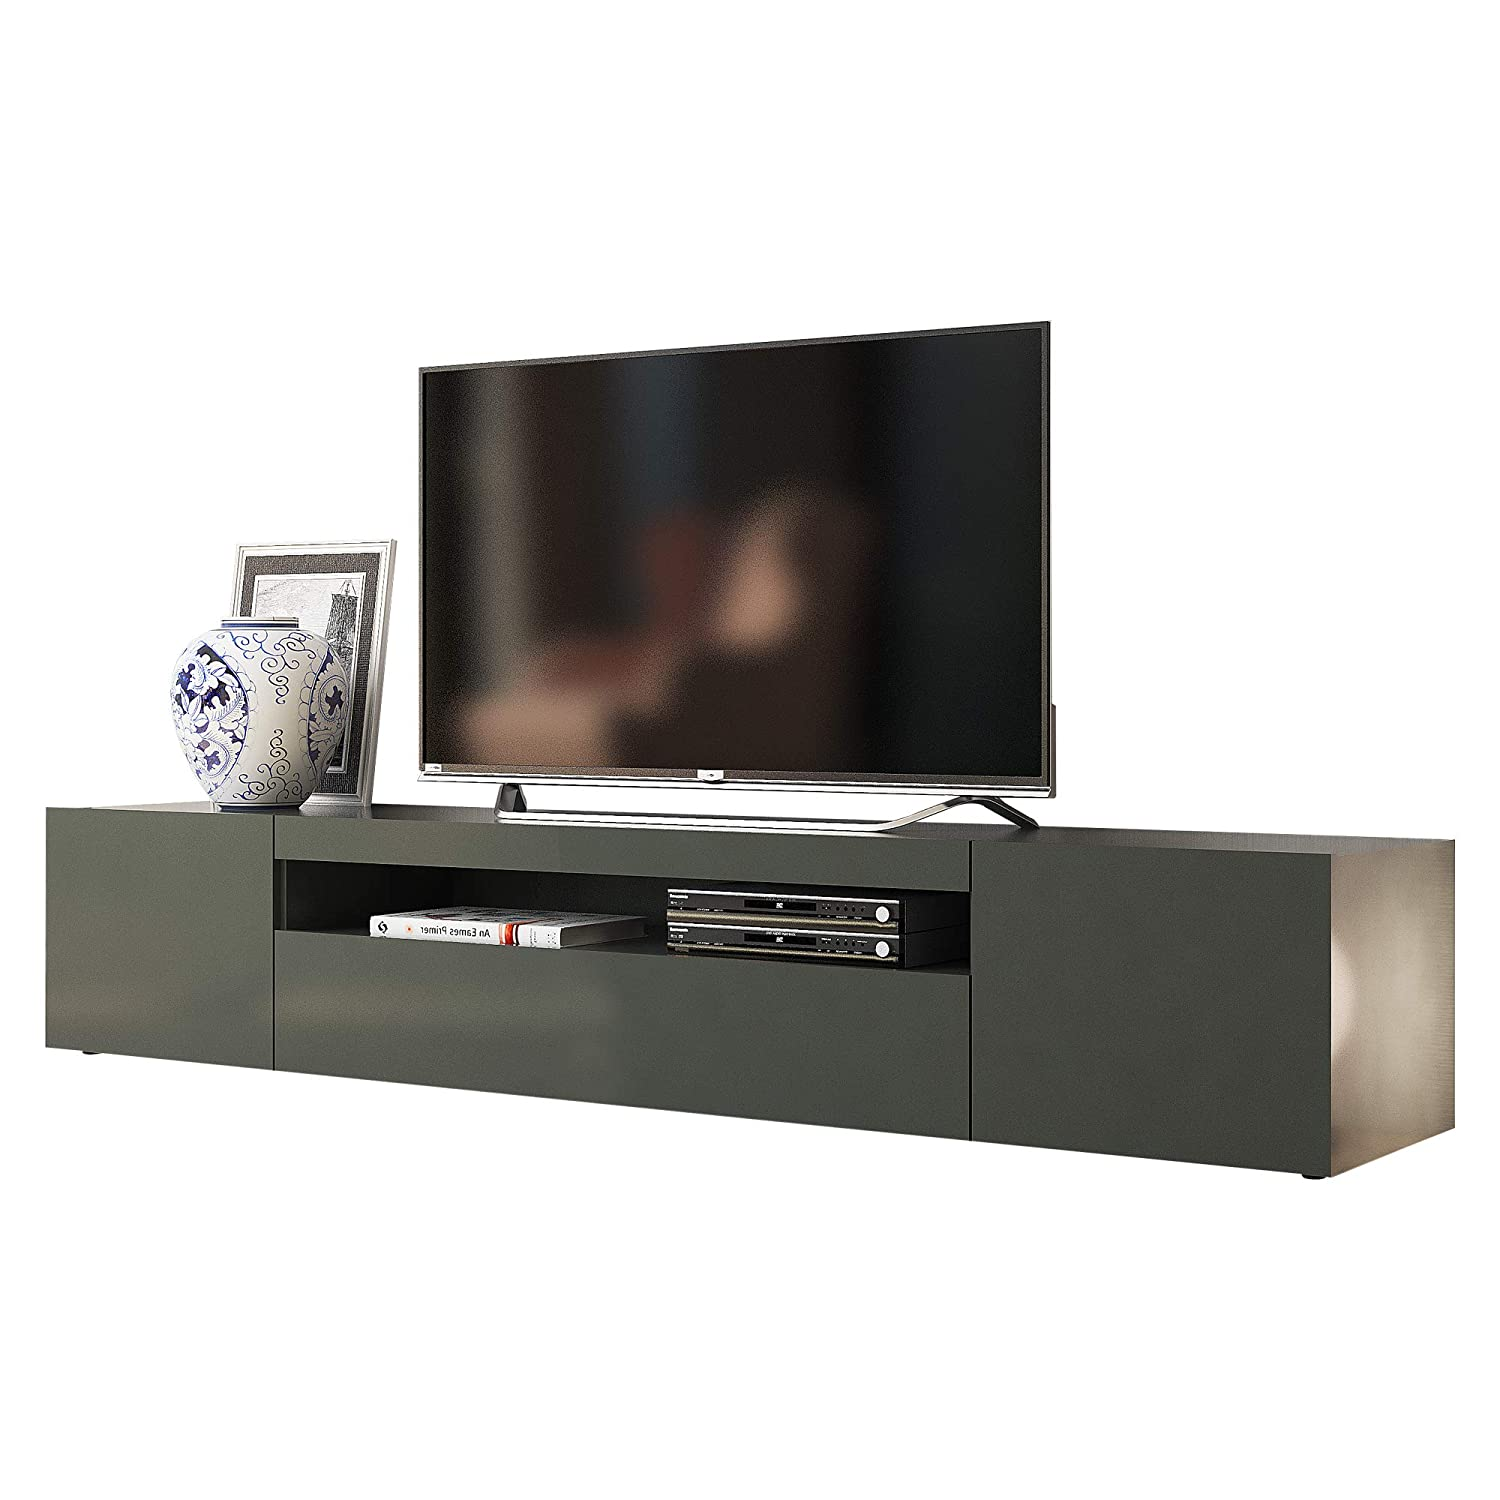 Furniture.Agency Modern TV Stand Sound Bar Storage with Led, Made in Italy